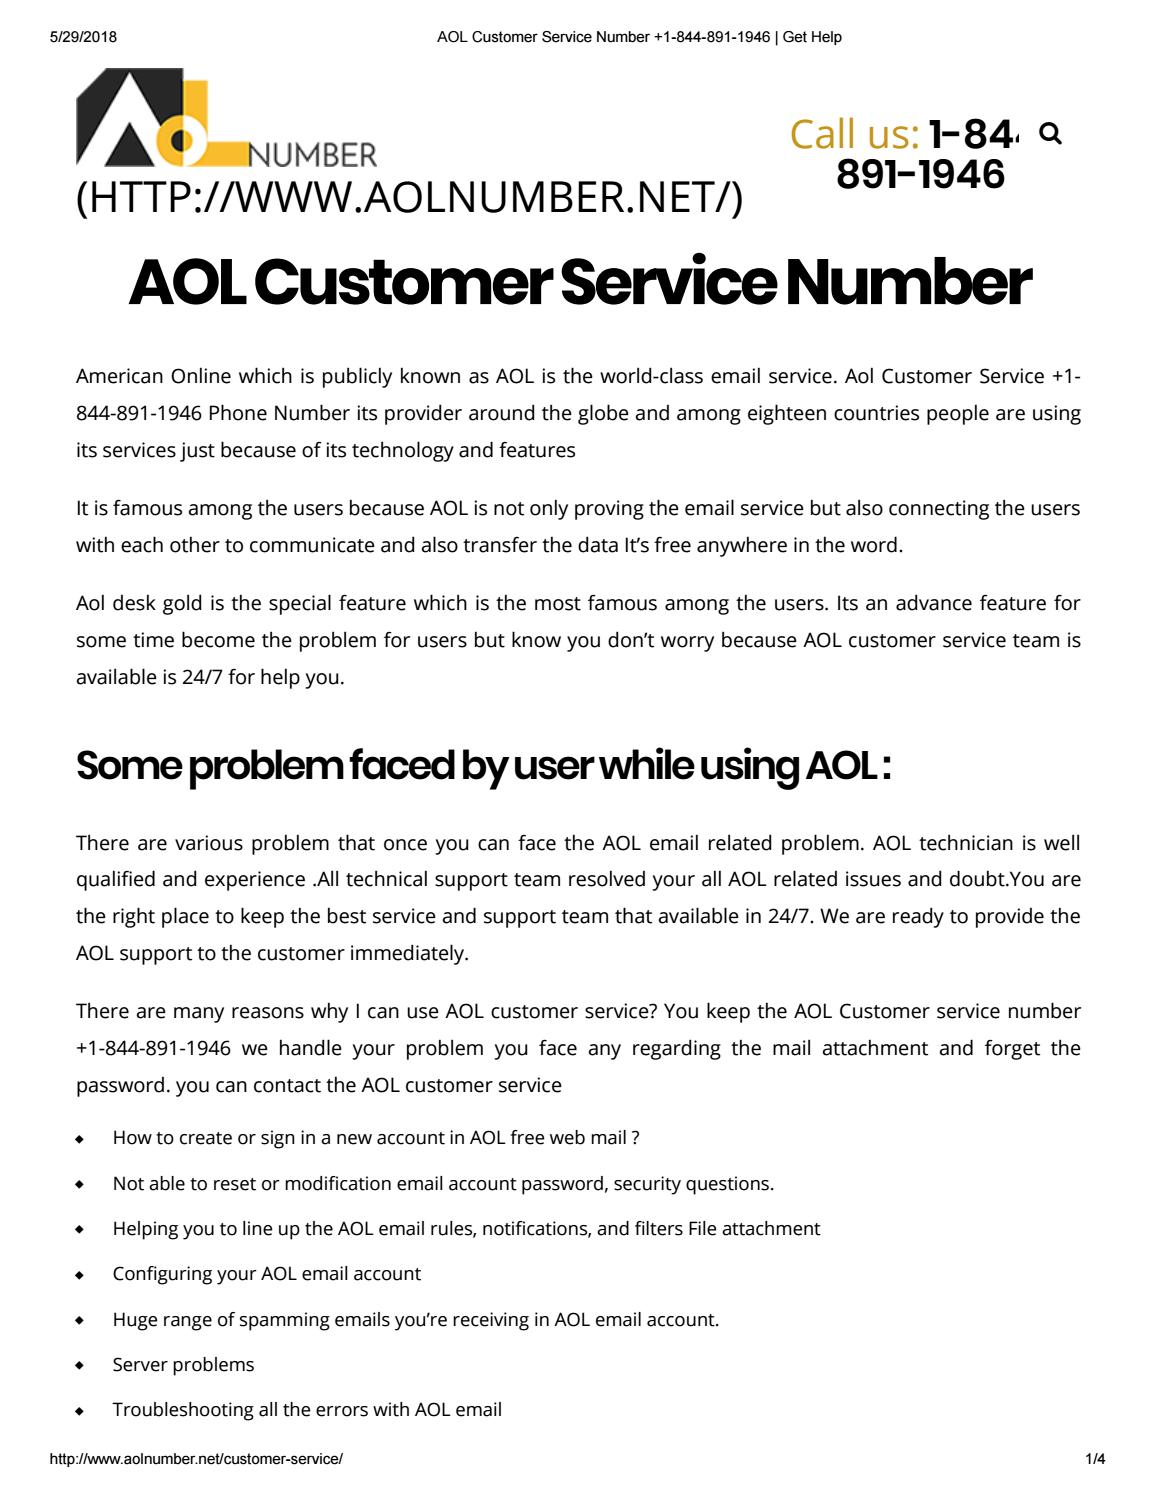 aol customer service number 1 844 891 1946 get help by himanshu